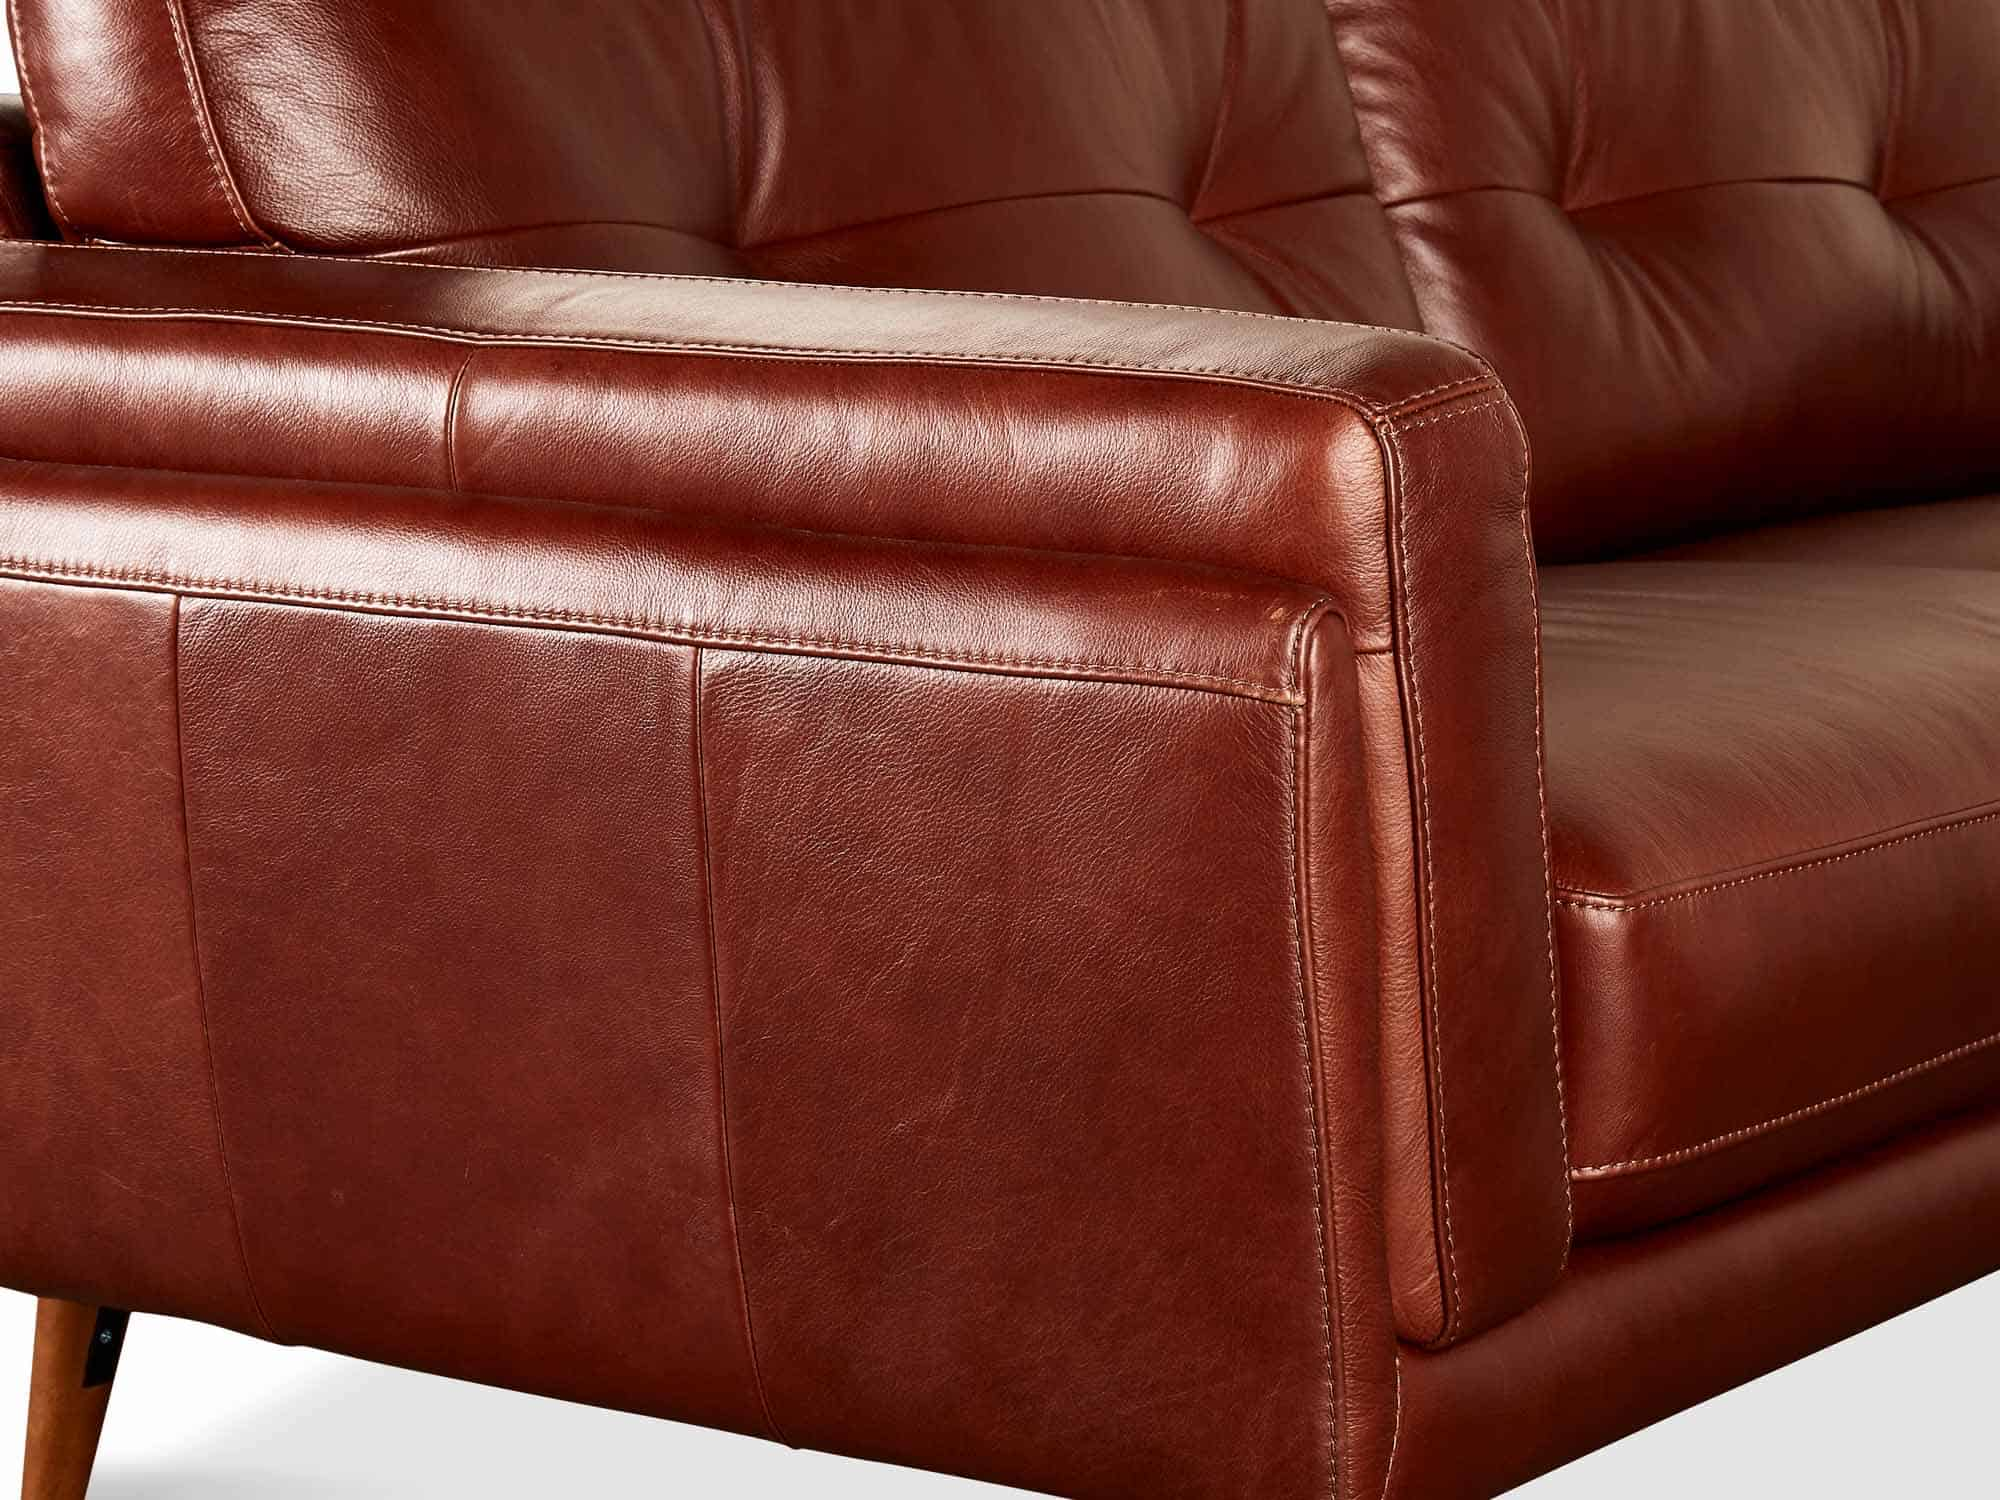 Fitch 3 seater sofa